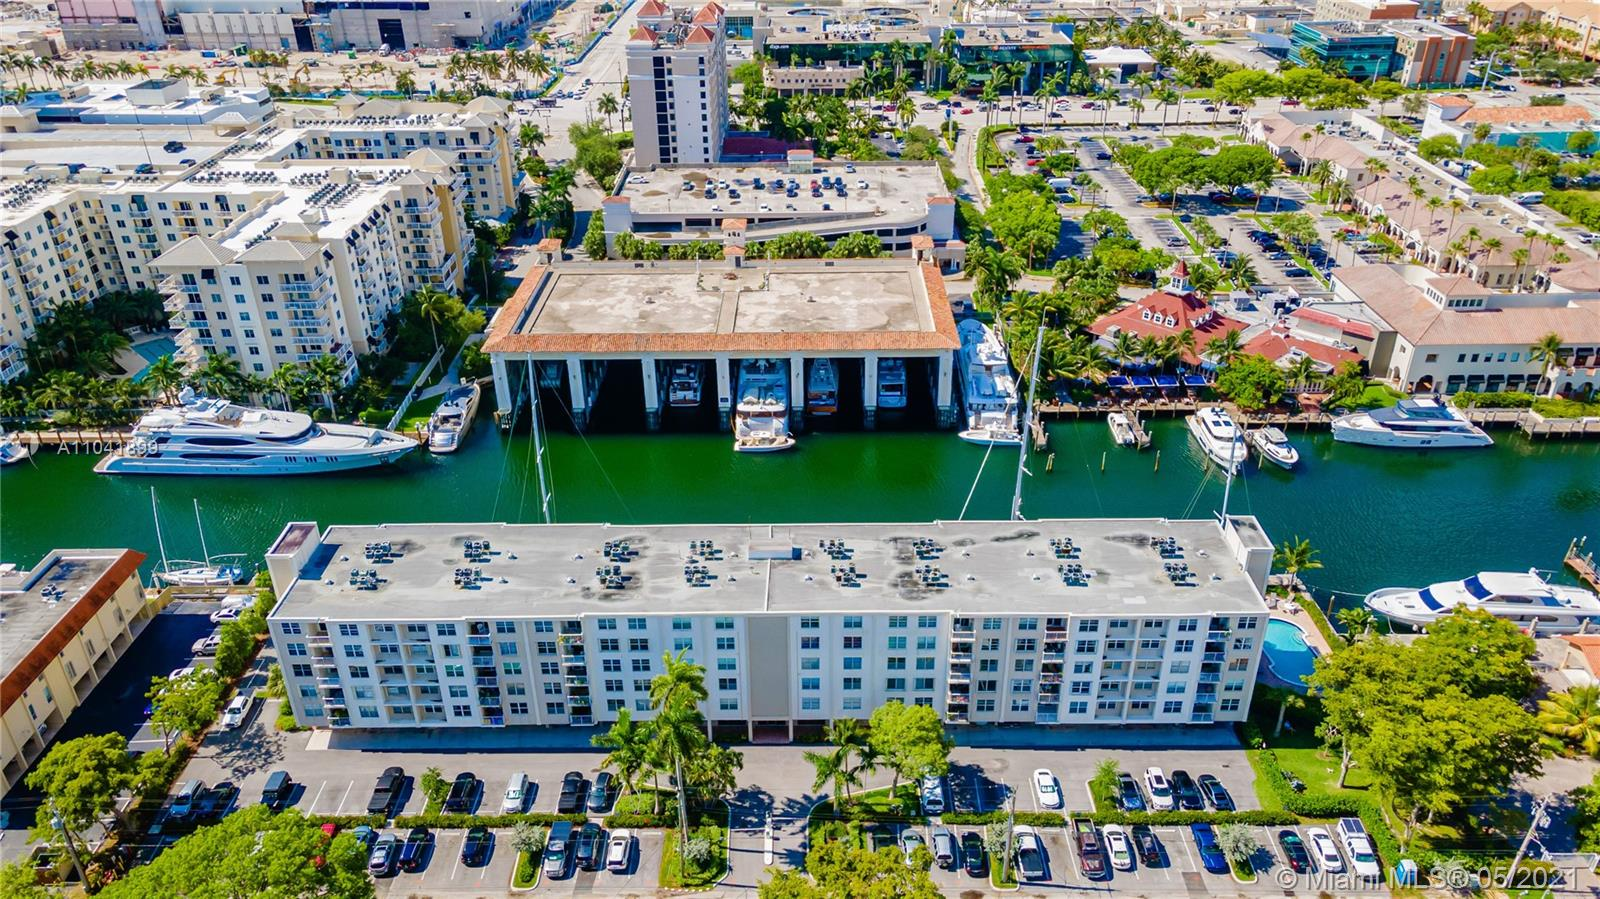 Welcome to your new waterfront paradise! This unit was remodeled head to toe - just bring your toothbrush and your bathing suit. Located on the intracoastal with large porcelain tile, open concept living with modern white cabinets, quartz countertops, custom stainless steel appliances, impact windows, & washer/dryer in unit. Building is gated and has its own dog park, pool, gym, sauna and you can BBQ while watching the gorgeous yachts pass by. Walk to several waterfront restaurants and shops. 2 miles from the beach. Can rent after 1 year. ONE OF THE FEW CONDOS YOU CAN BUY WITH 5% DOWN!!!